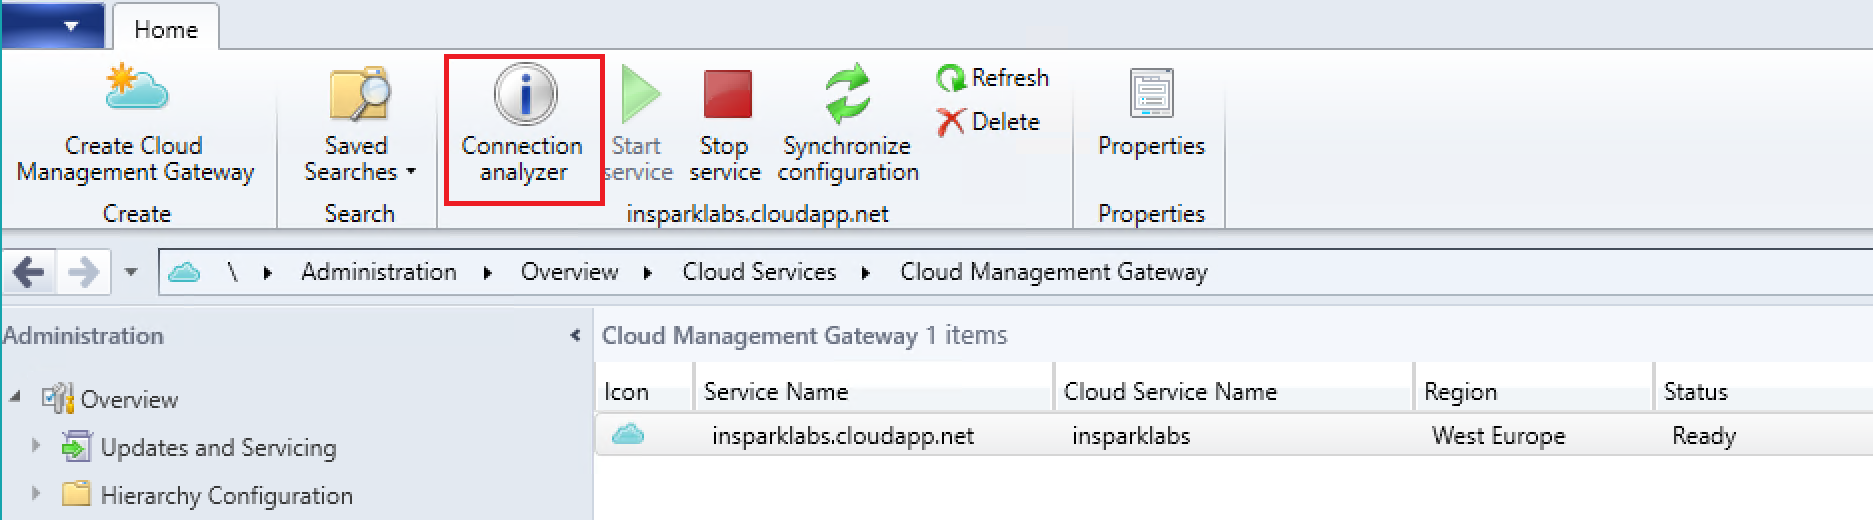 Troubleshooting Cloud Management Gateway: Quick